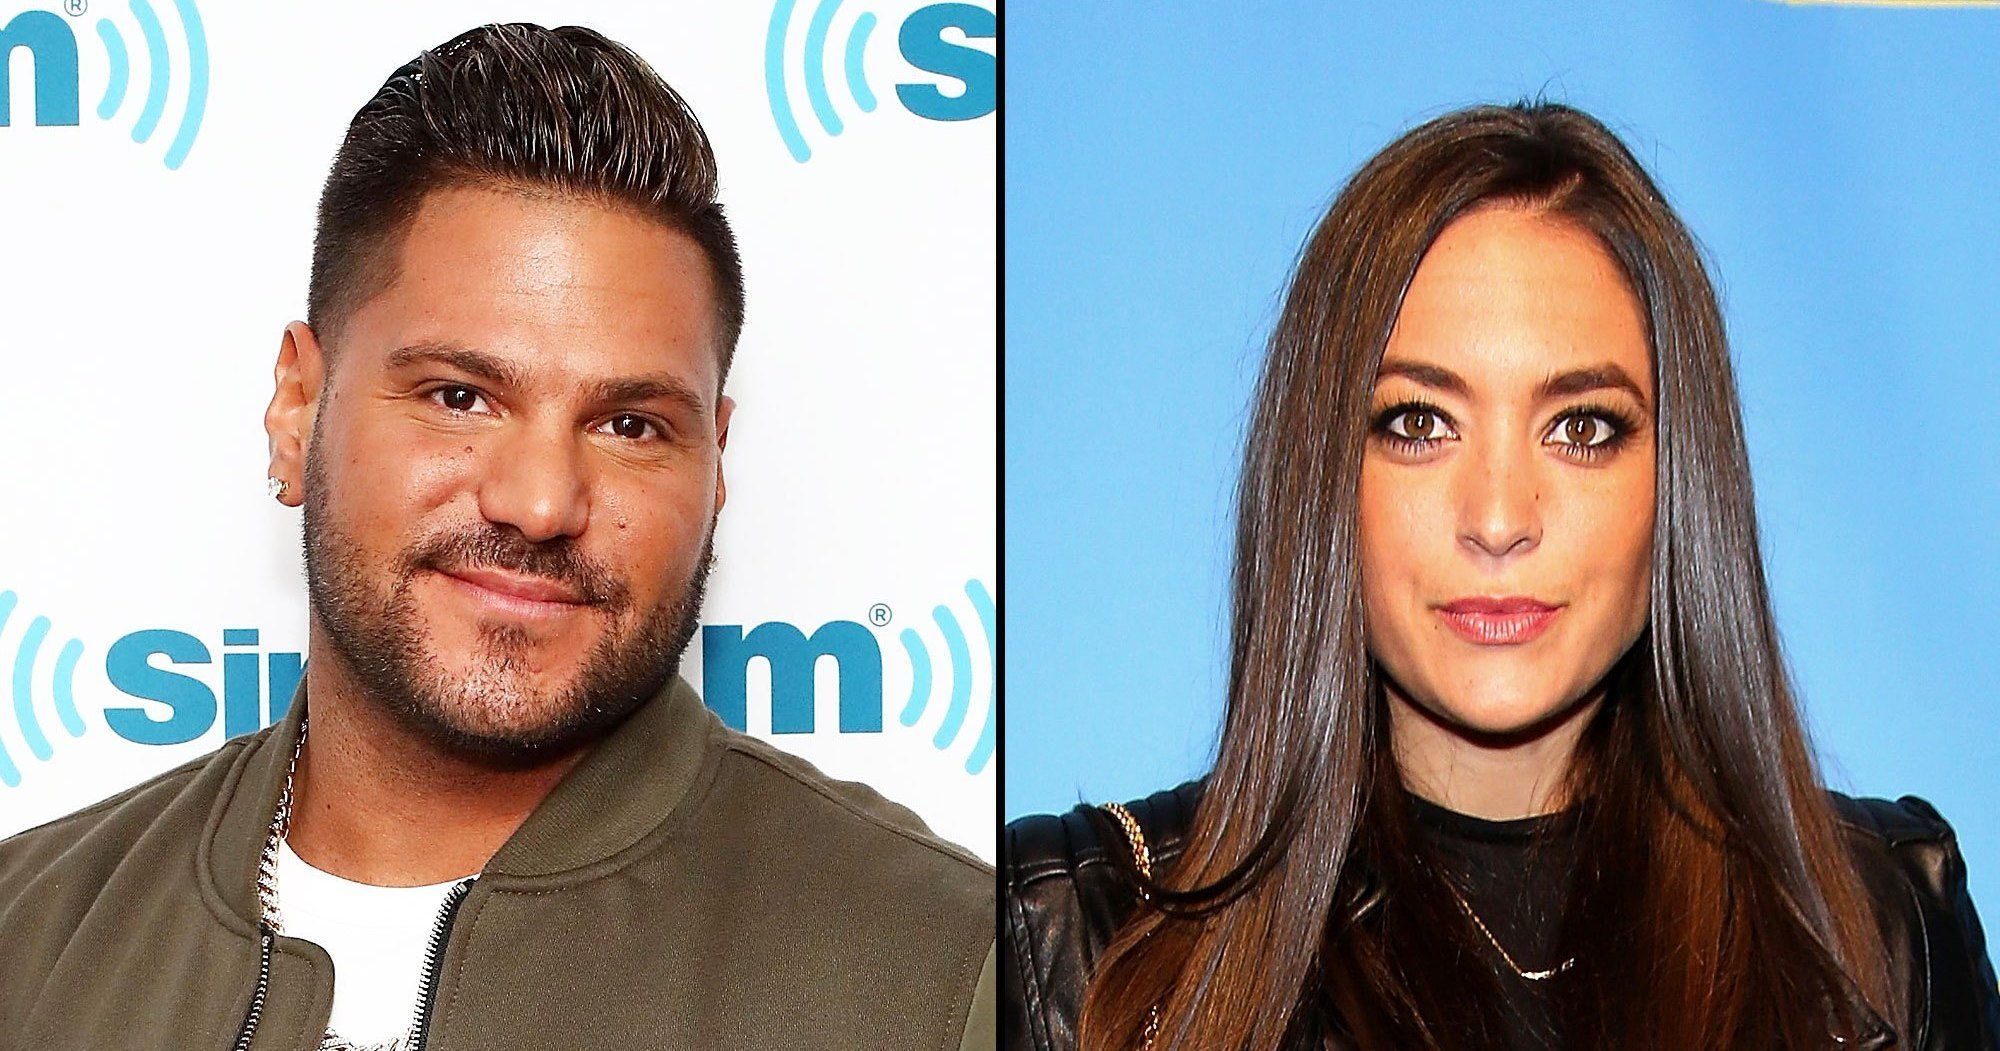 Do 'Jersey Shore' Exes Ronnie and Sammi Stay in Touch?